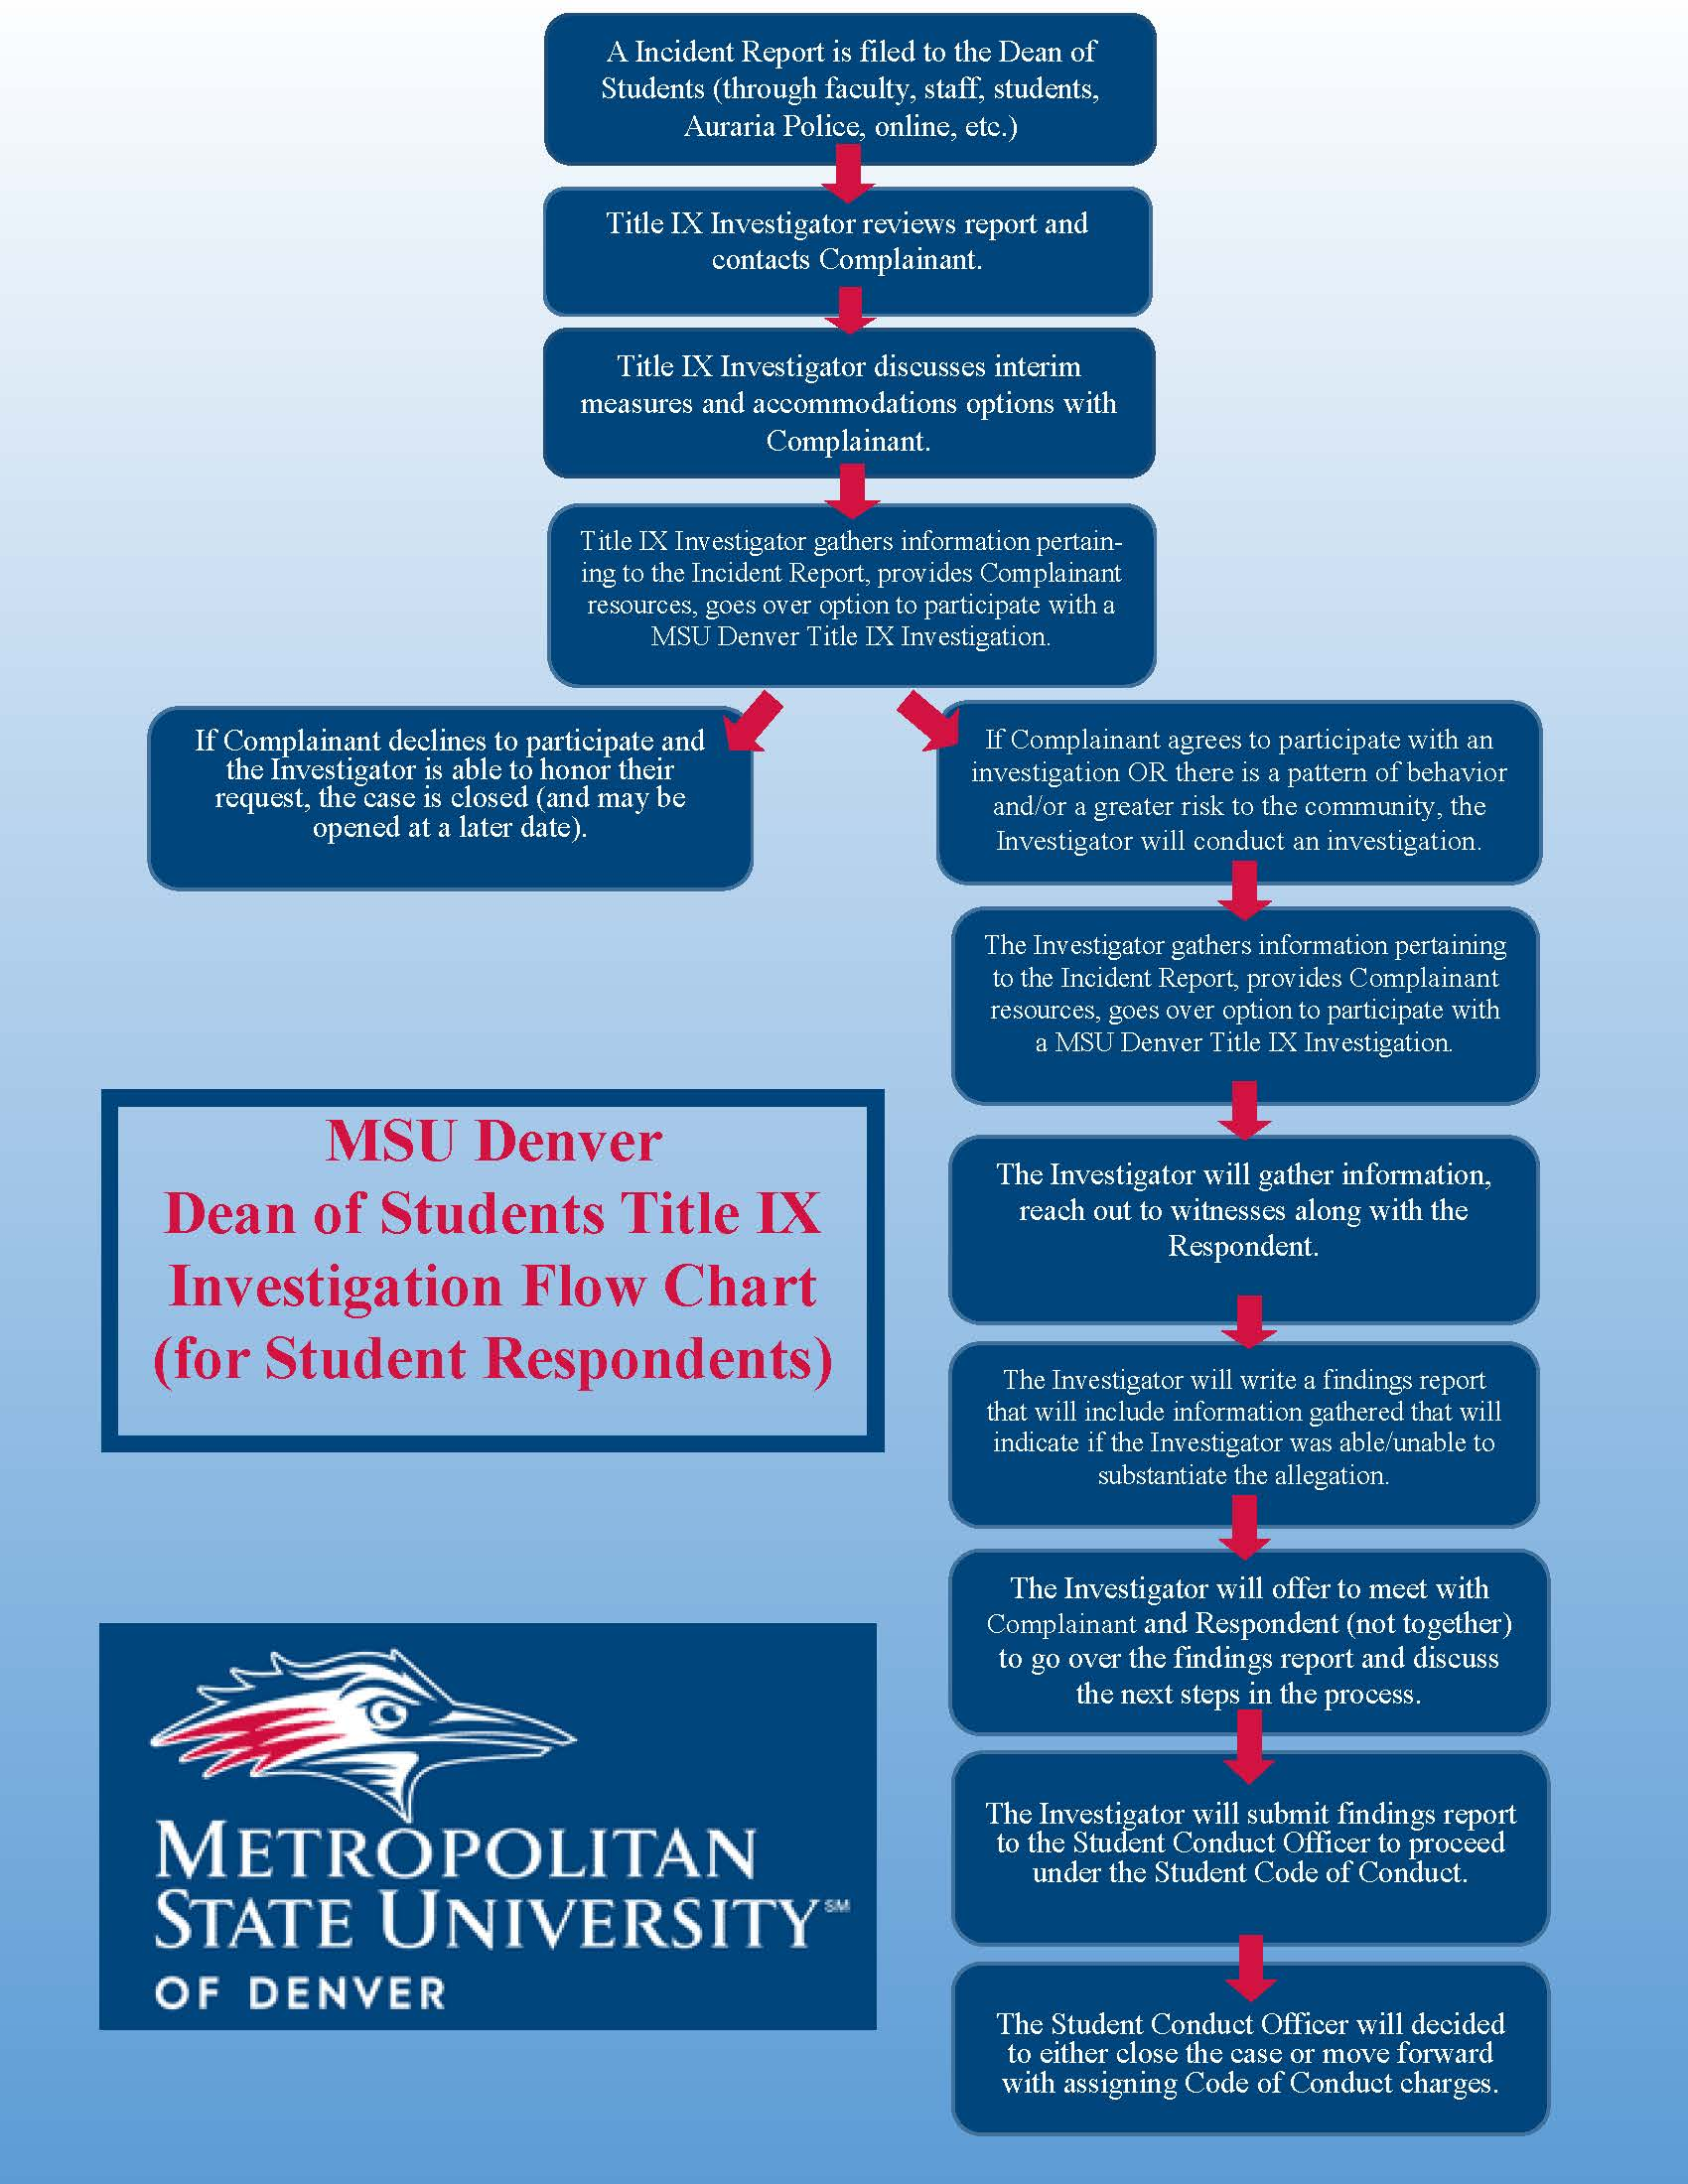 The Dean of Students Title IX Investigation Flowchart